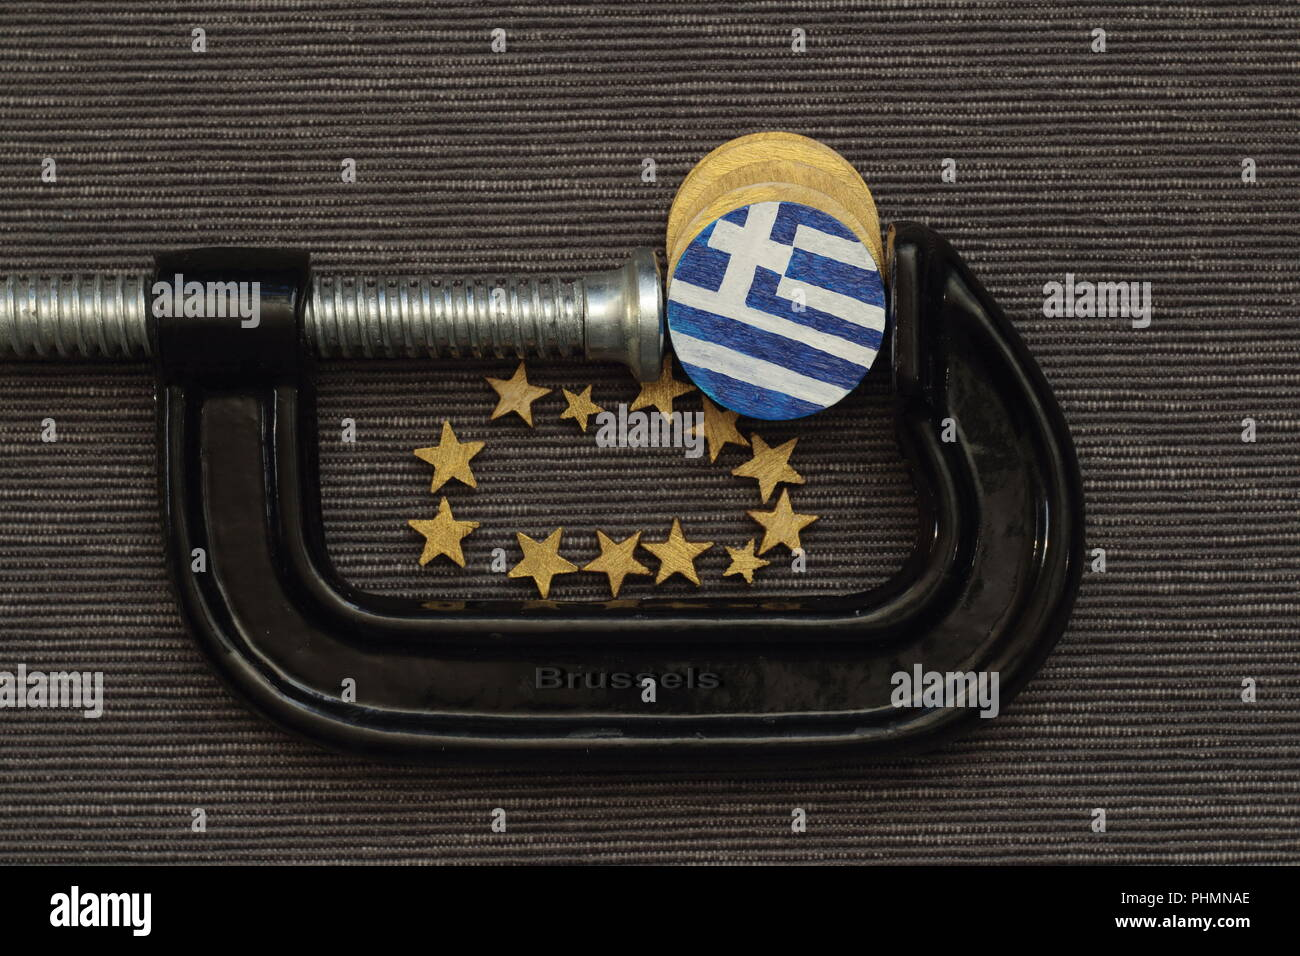 Greece coin is clamp pressure - Stock Image